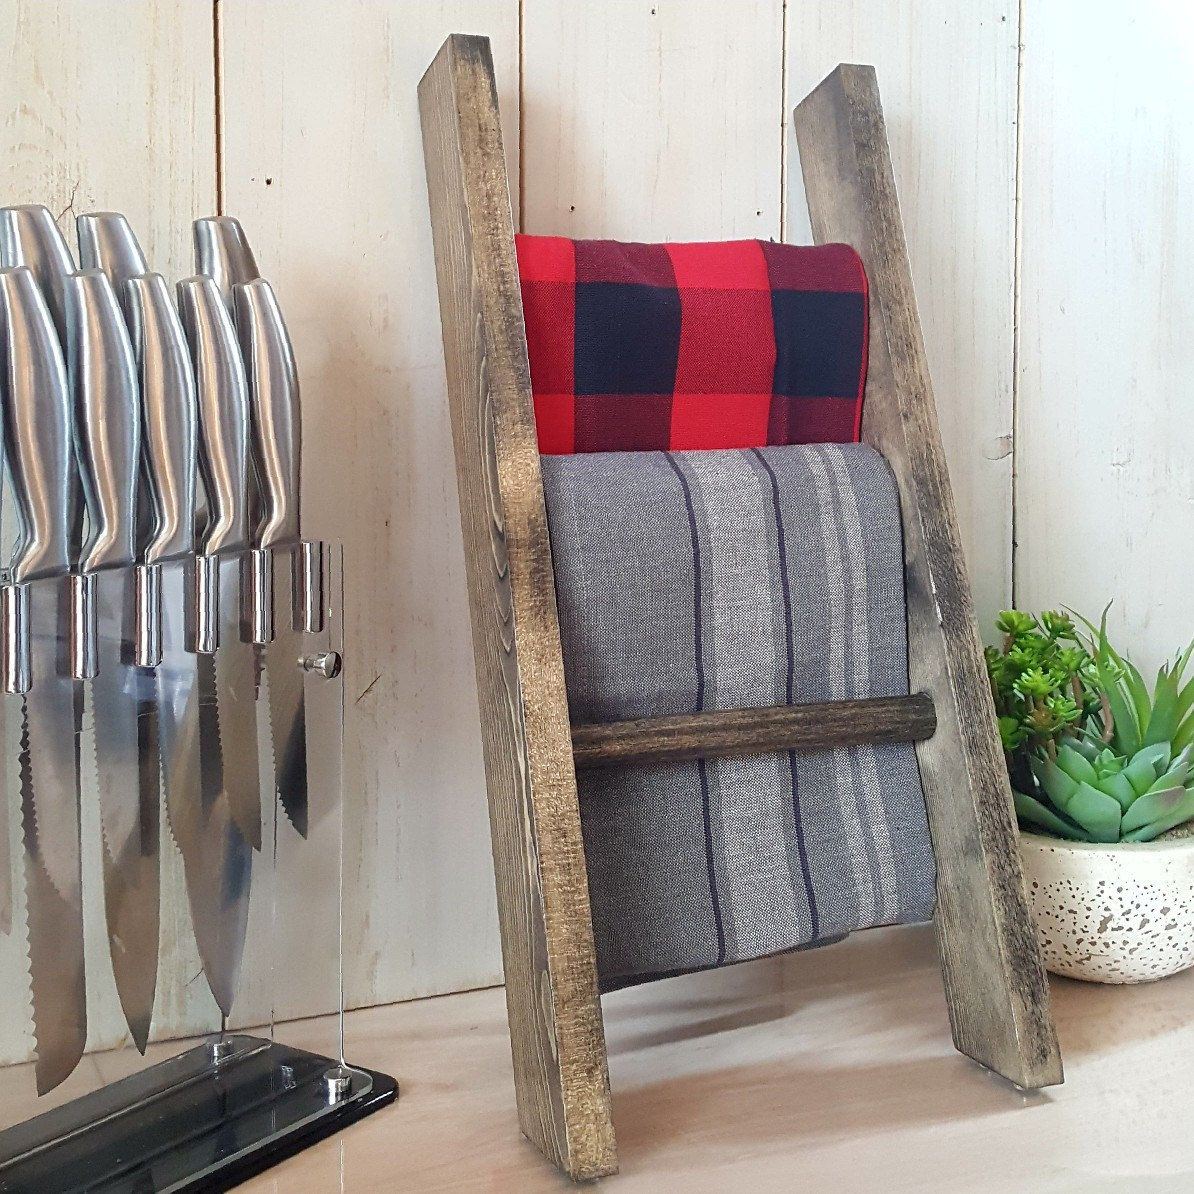 Kitchen Decor Ladder We Are In Love With Our New Towel Ladders Available In 3